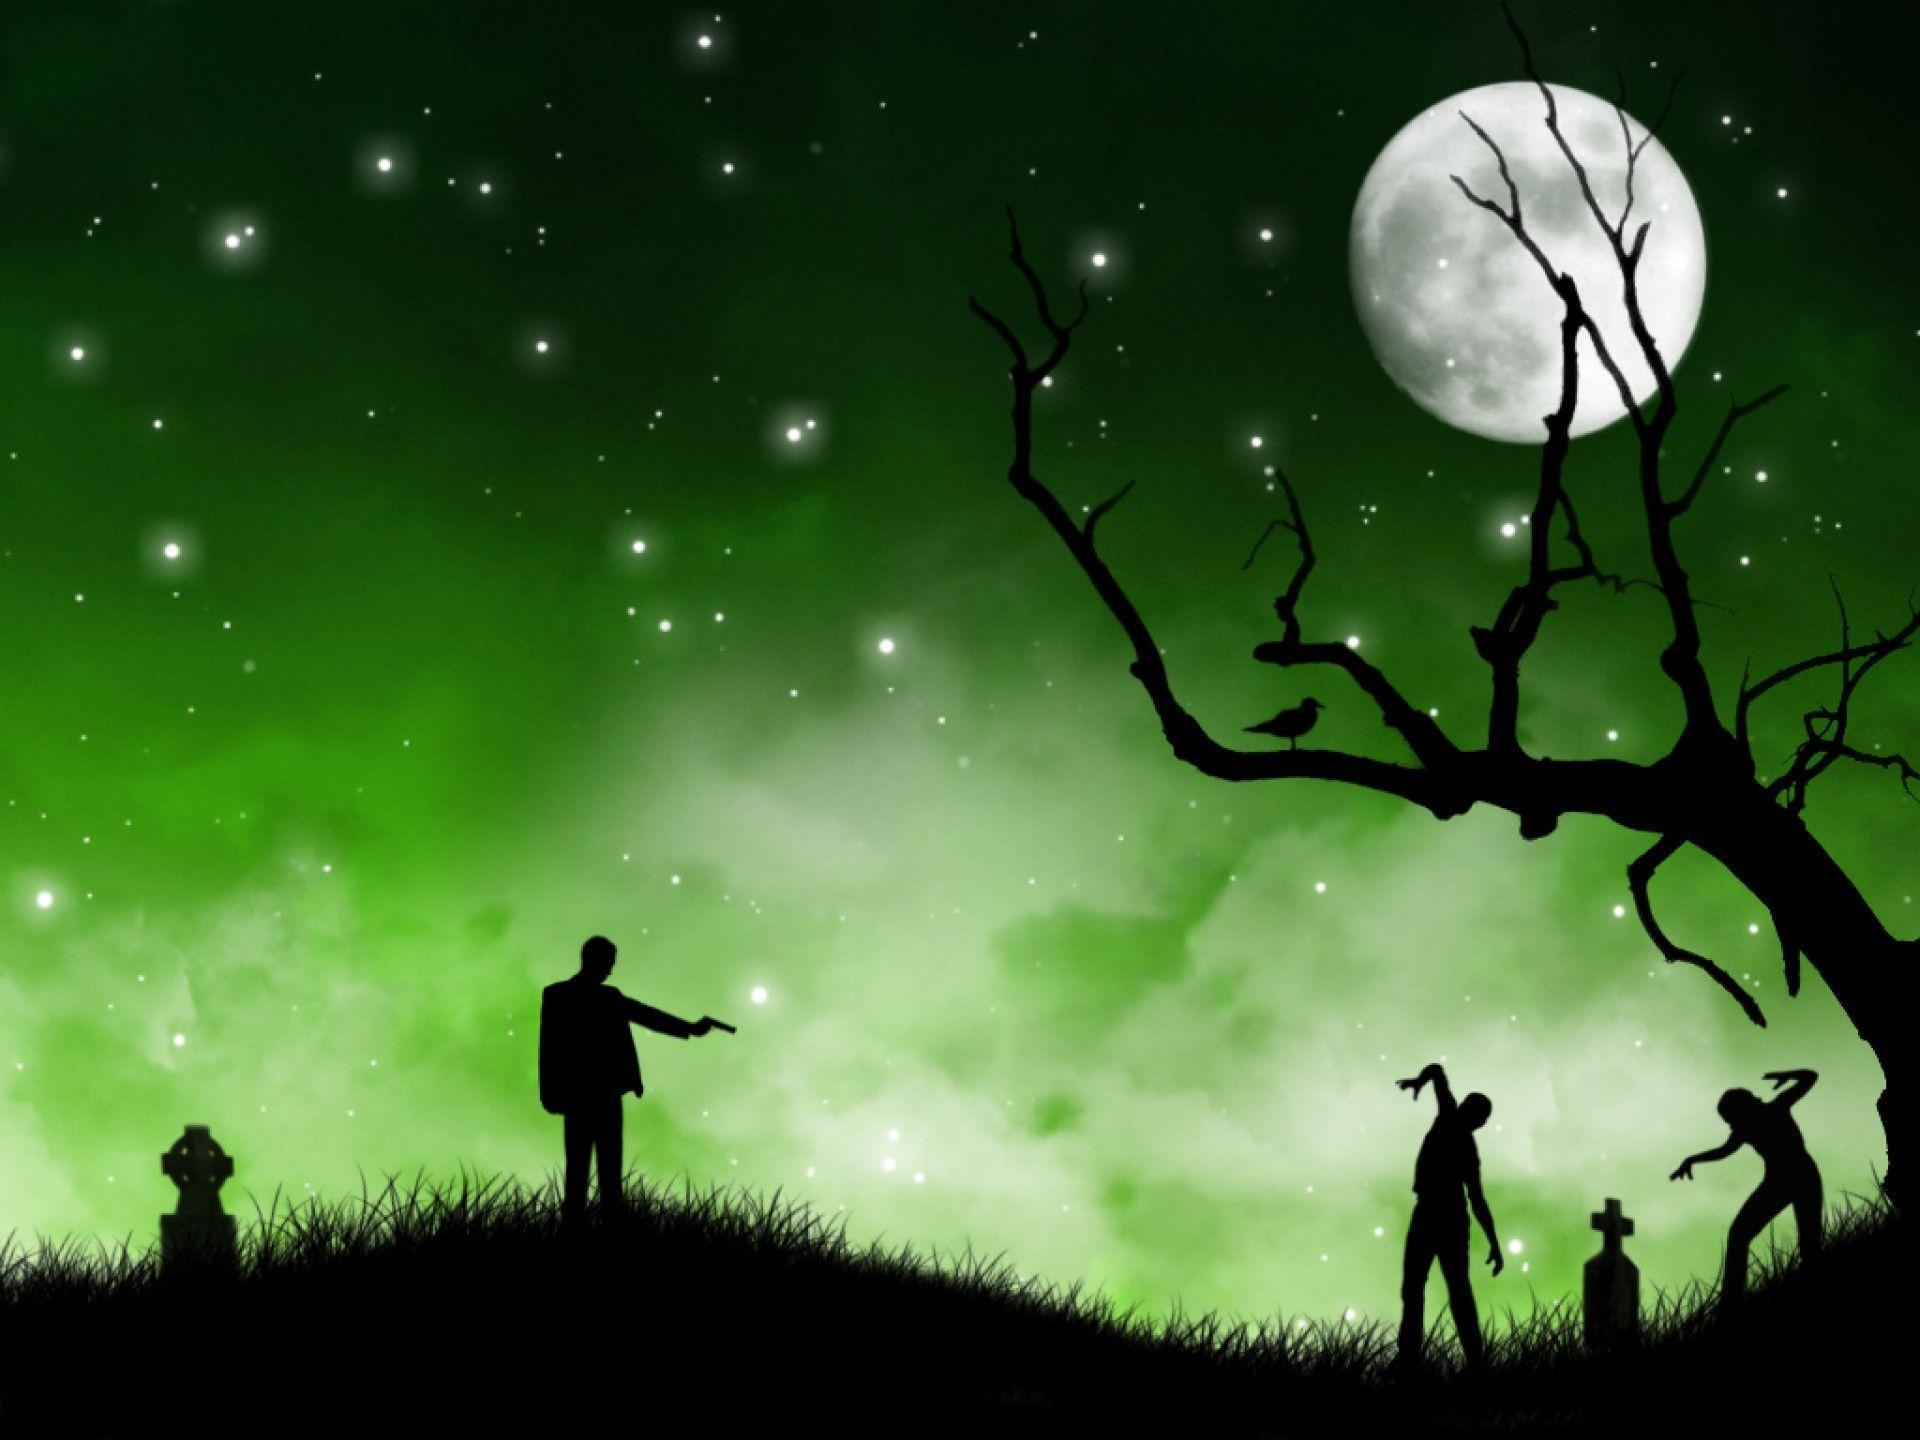 Zombie Artwork Wallpaper Cute Zombie Wallpapers...